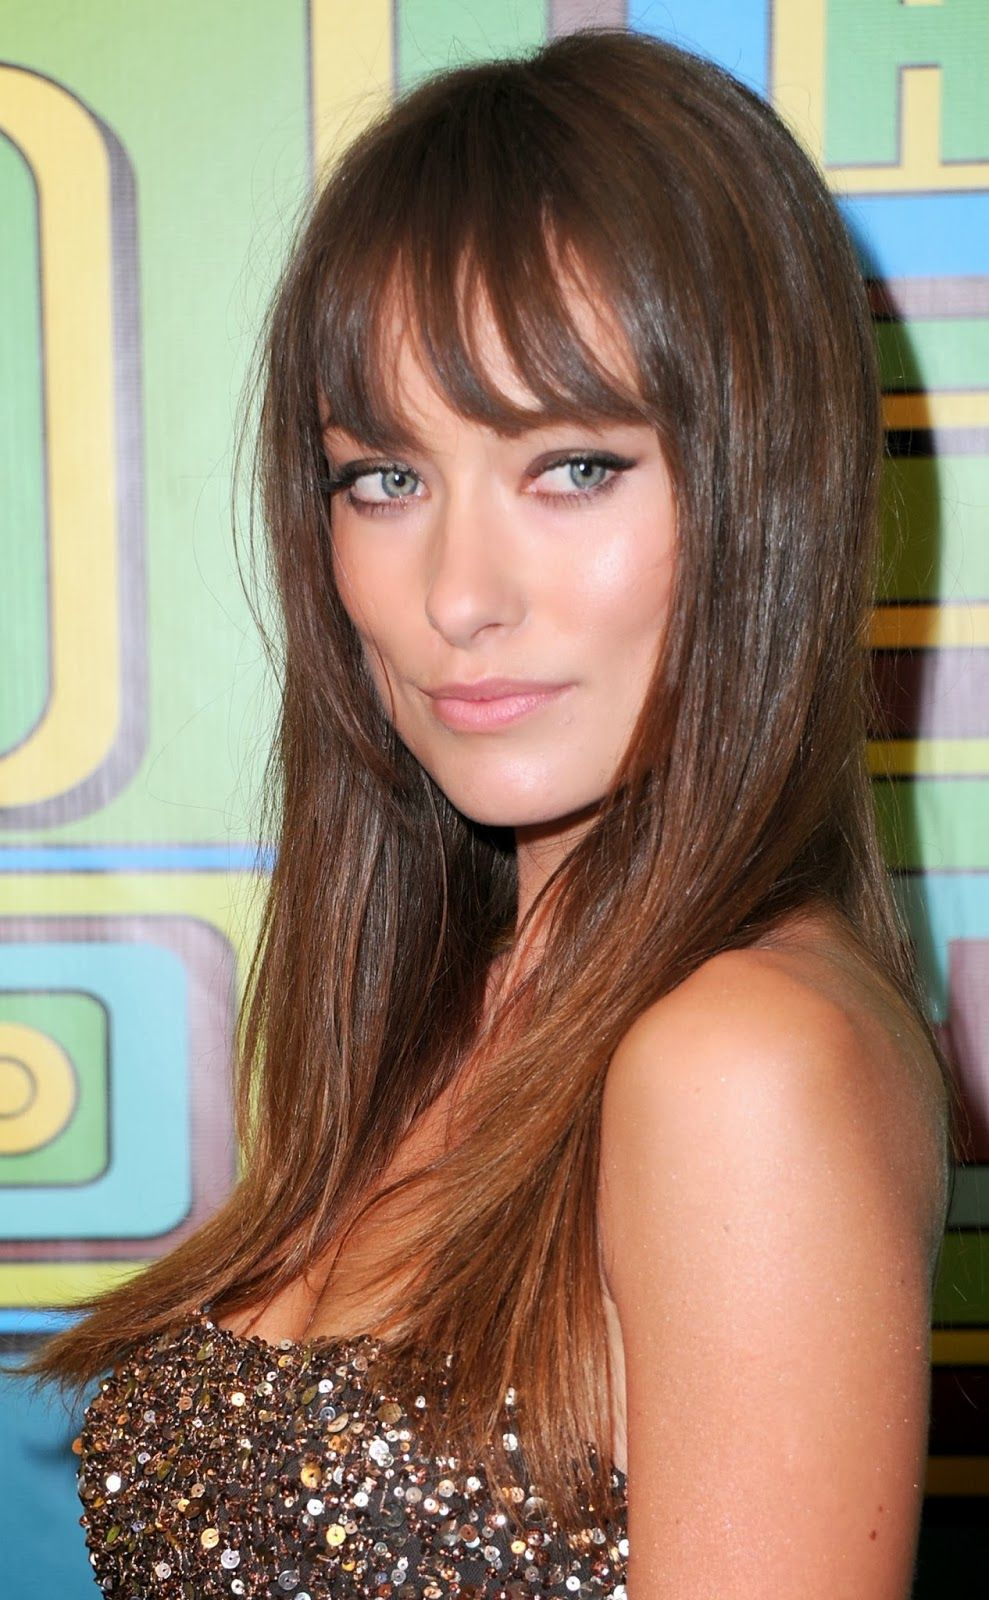 the best bangs for a square face shape | hair | pinterest | hair